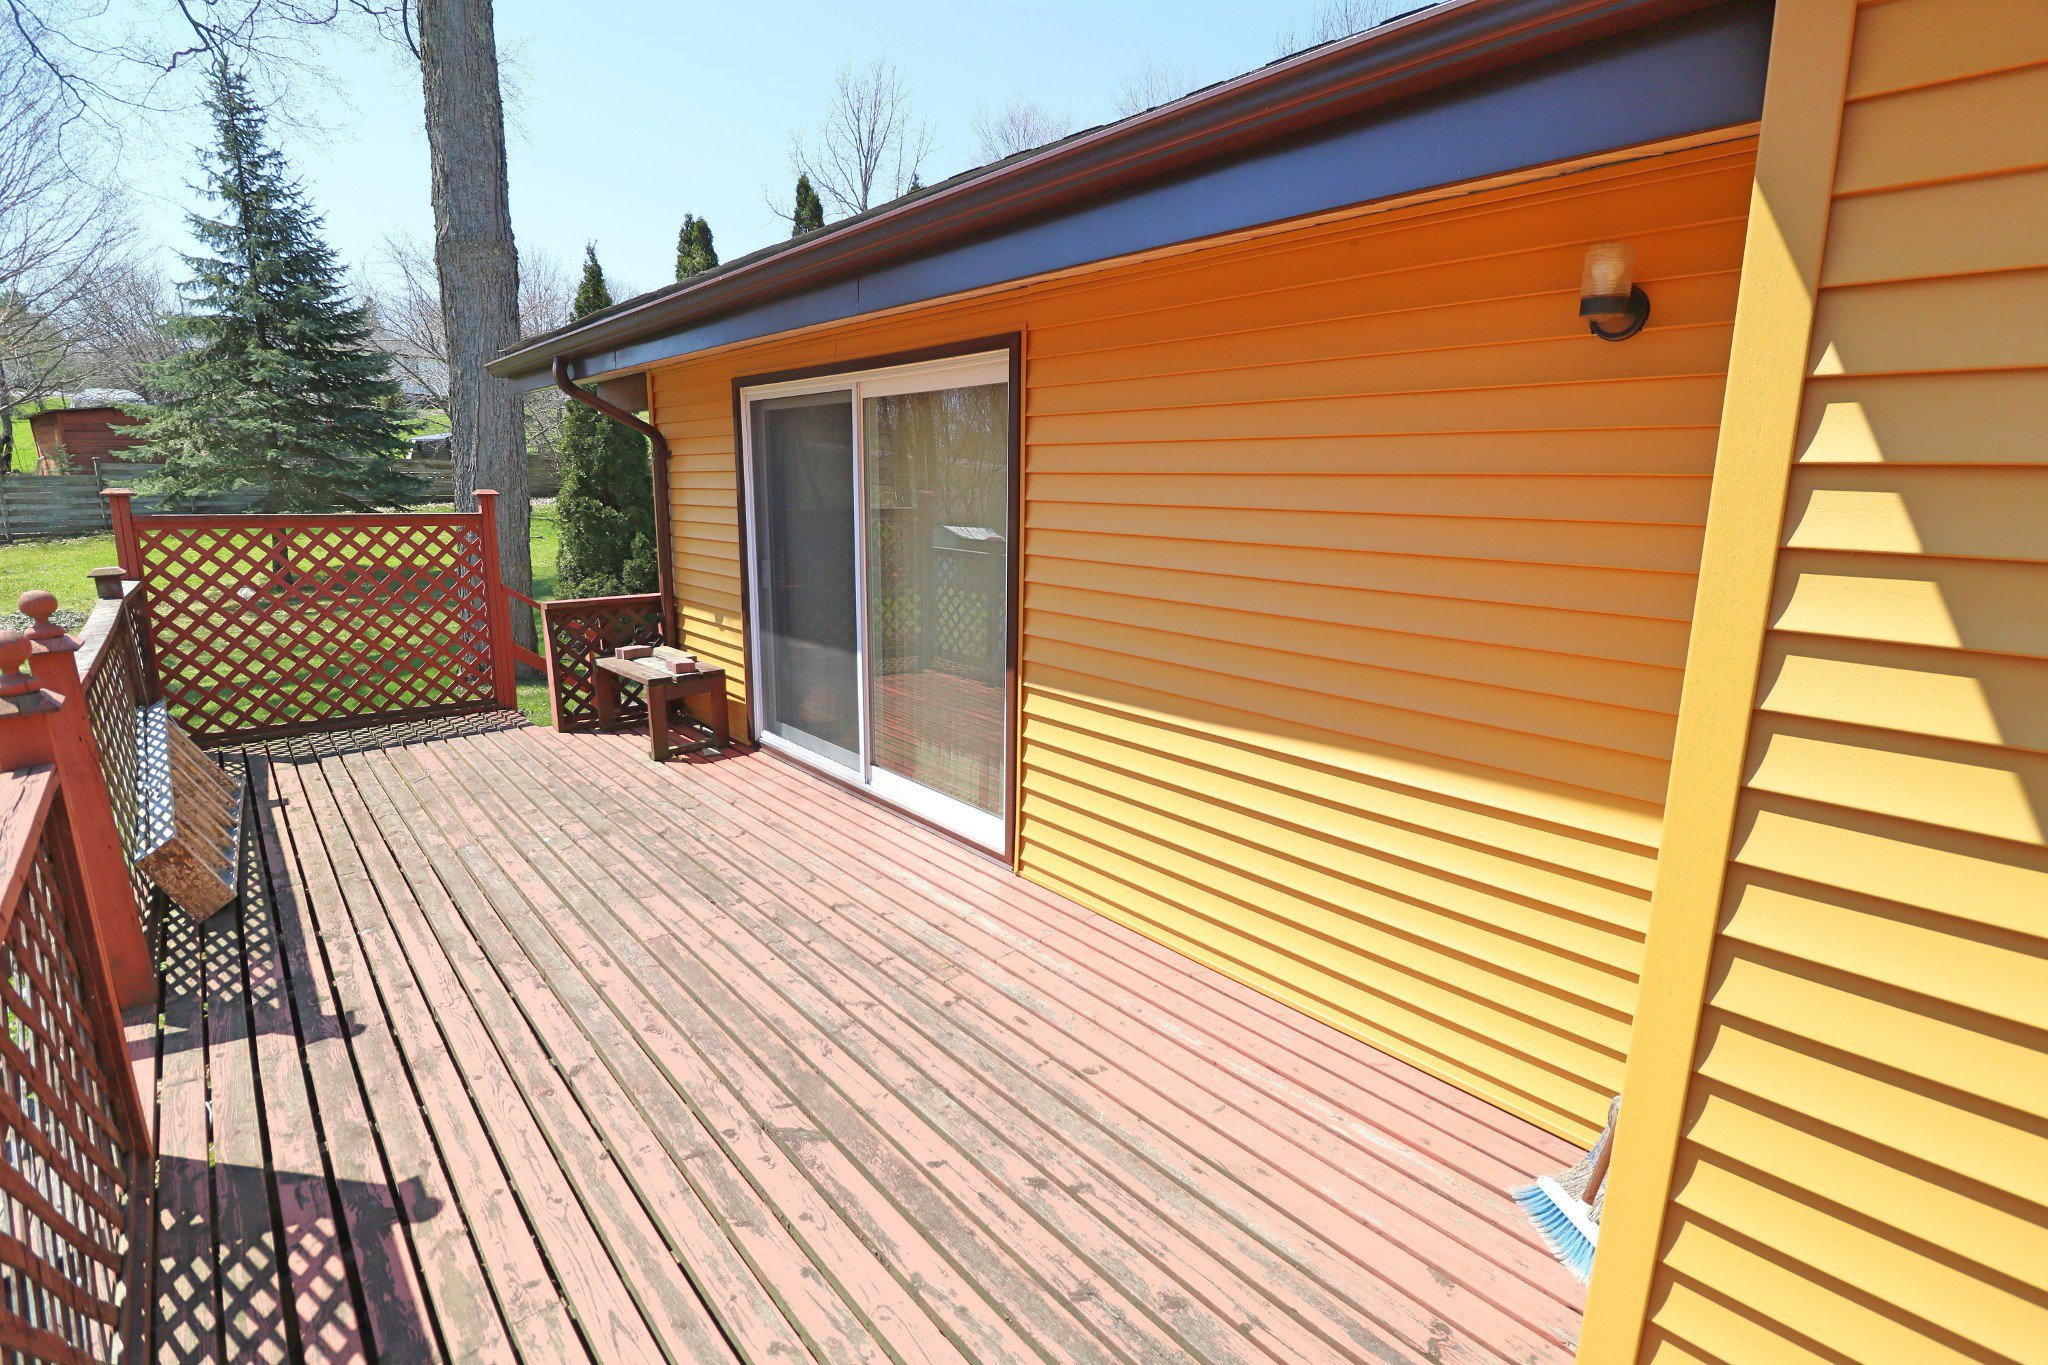 Photo 19: Photos: 37 Halstead Drive in Roseneath: Residential Detached for sale : MLS®# 192863